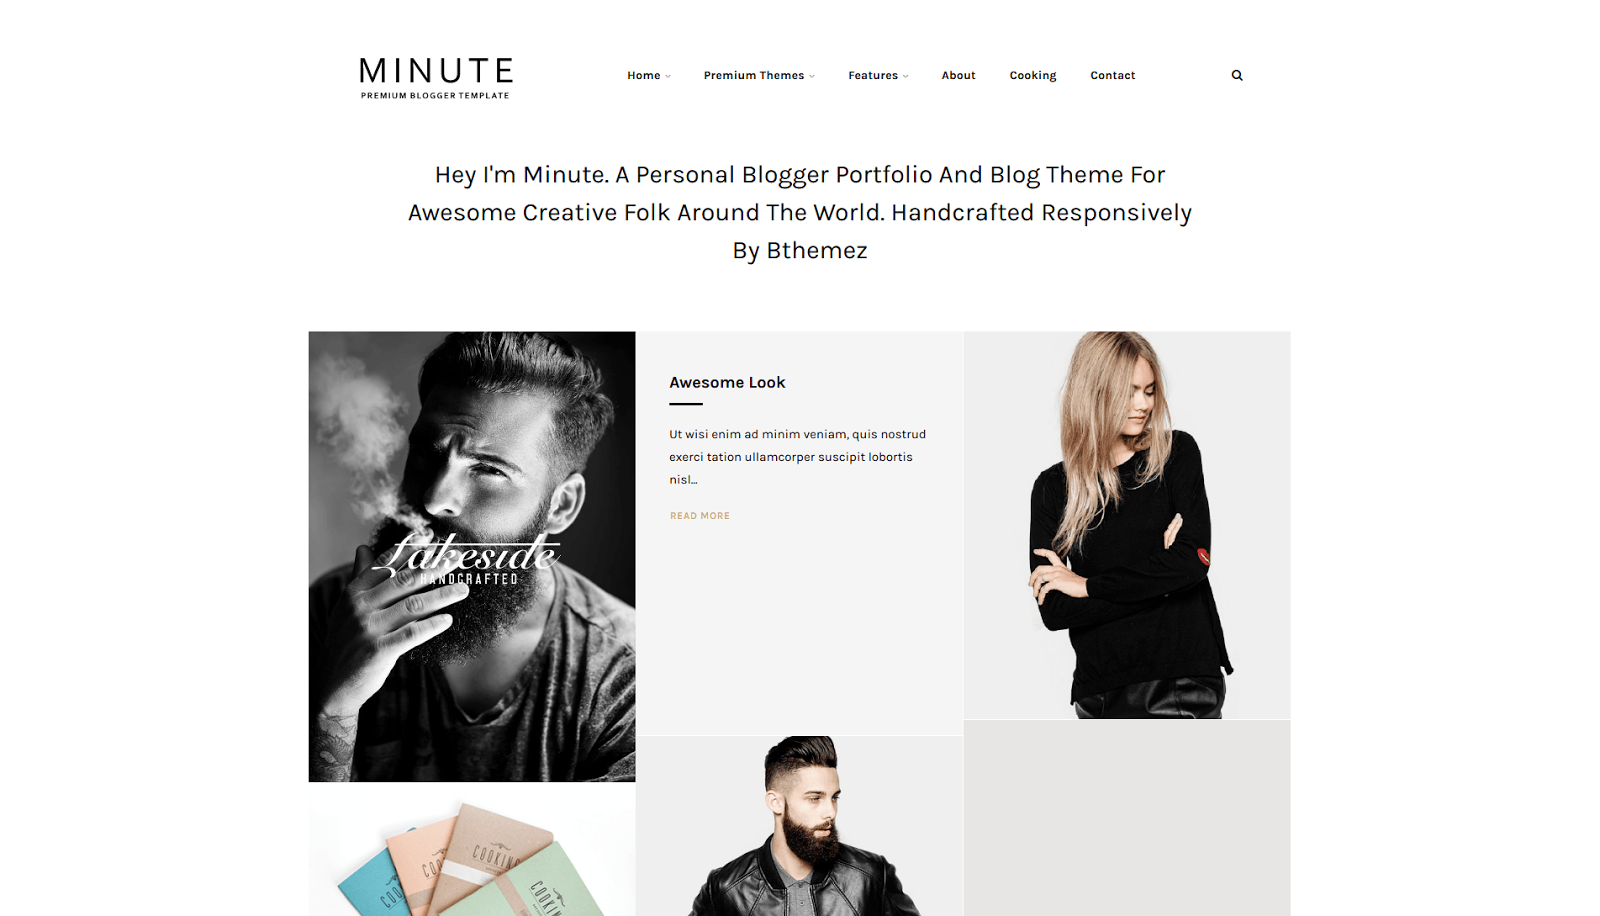 Minute Free Blogger Template 2015 - Msn4Free - Free Blogger Templates 2015